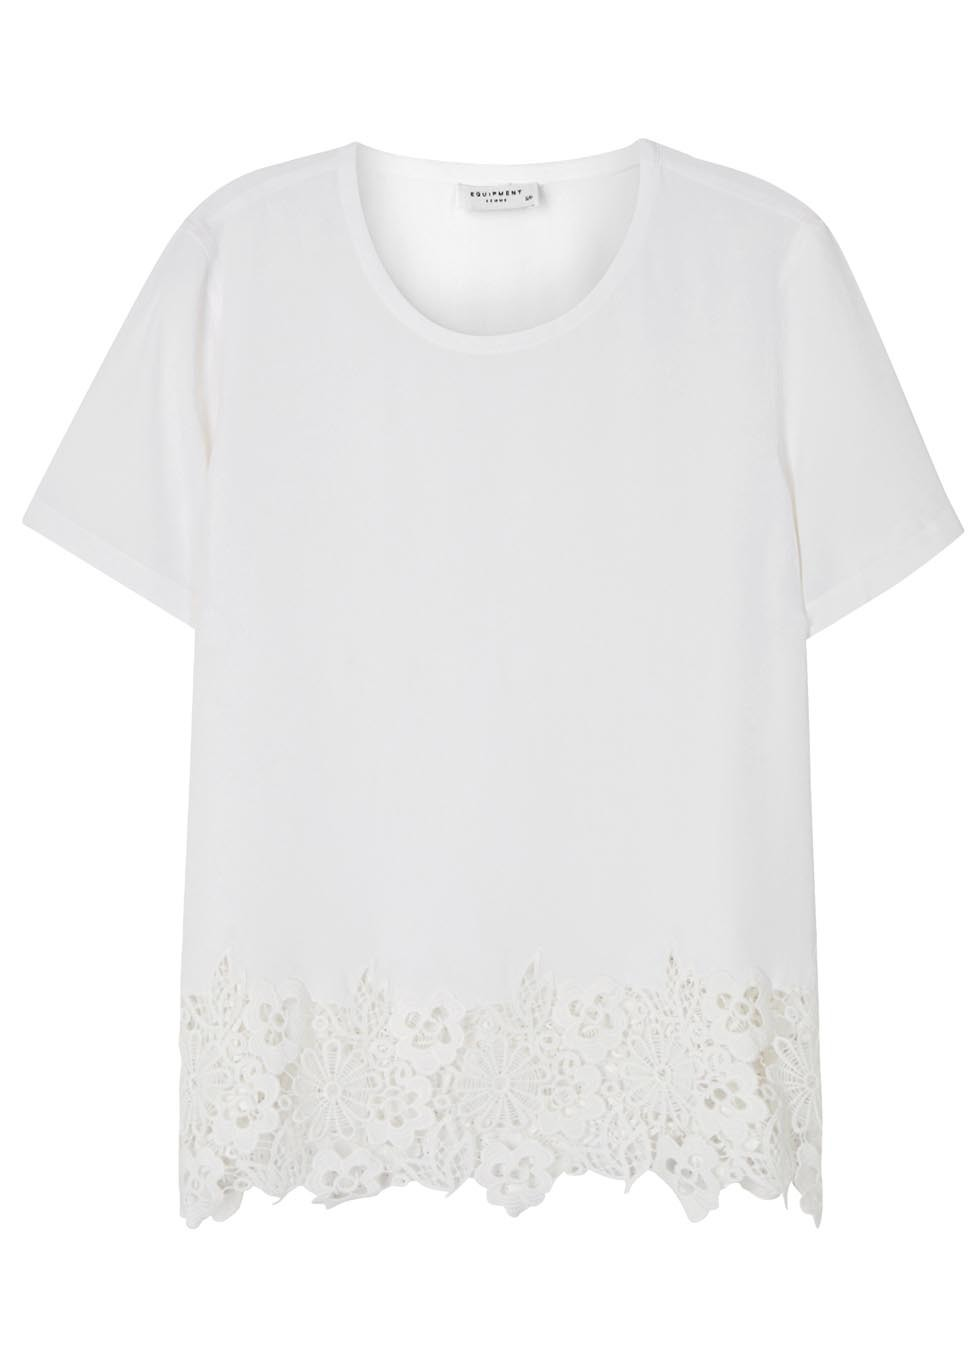 Riley Macramé Trimmed Silk T Shirt - pattern: plain; style: t-shirt; predominant colour: white; occasions: casual; length: standard; fibres: silk - 100%; fit: body skimming; neckline: crew; sleeve length: short sleeve; sleeve style: standard; texture group: silky - light; pattern type: fabric; embellishment: lace; season: s/s 2016